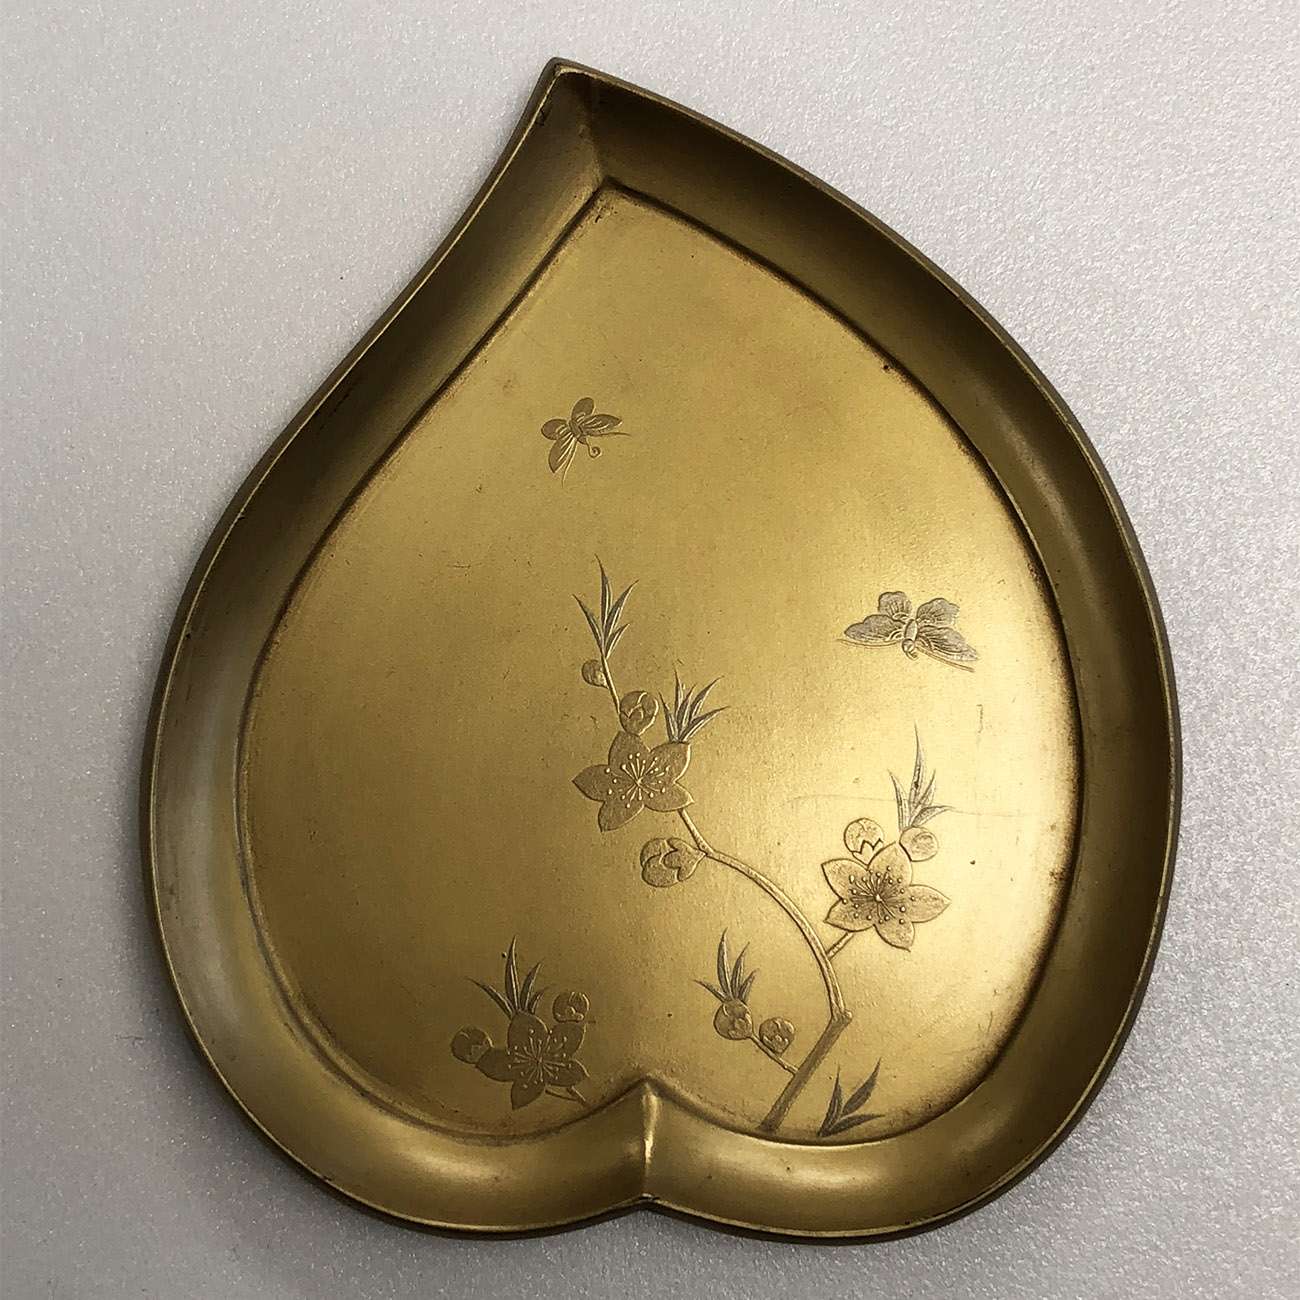 A peach-shaped tray with a design of delicate branches and butterflies in relief.